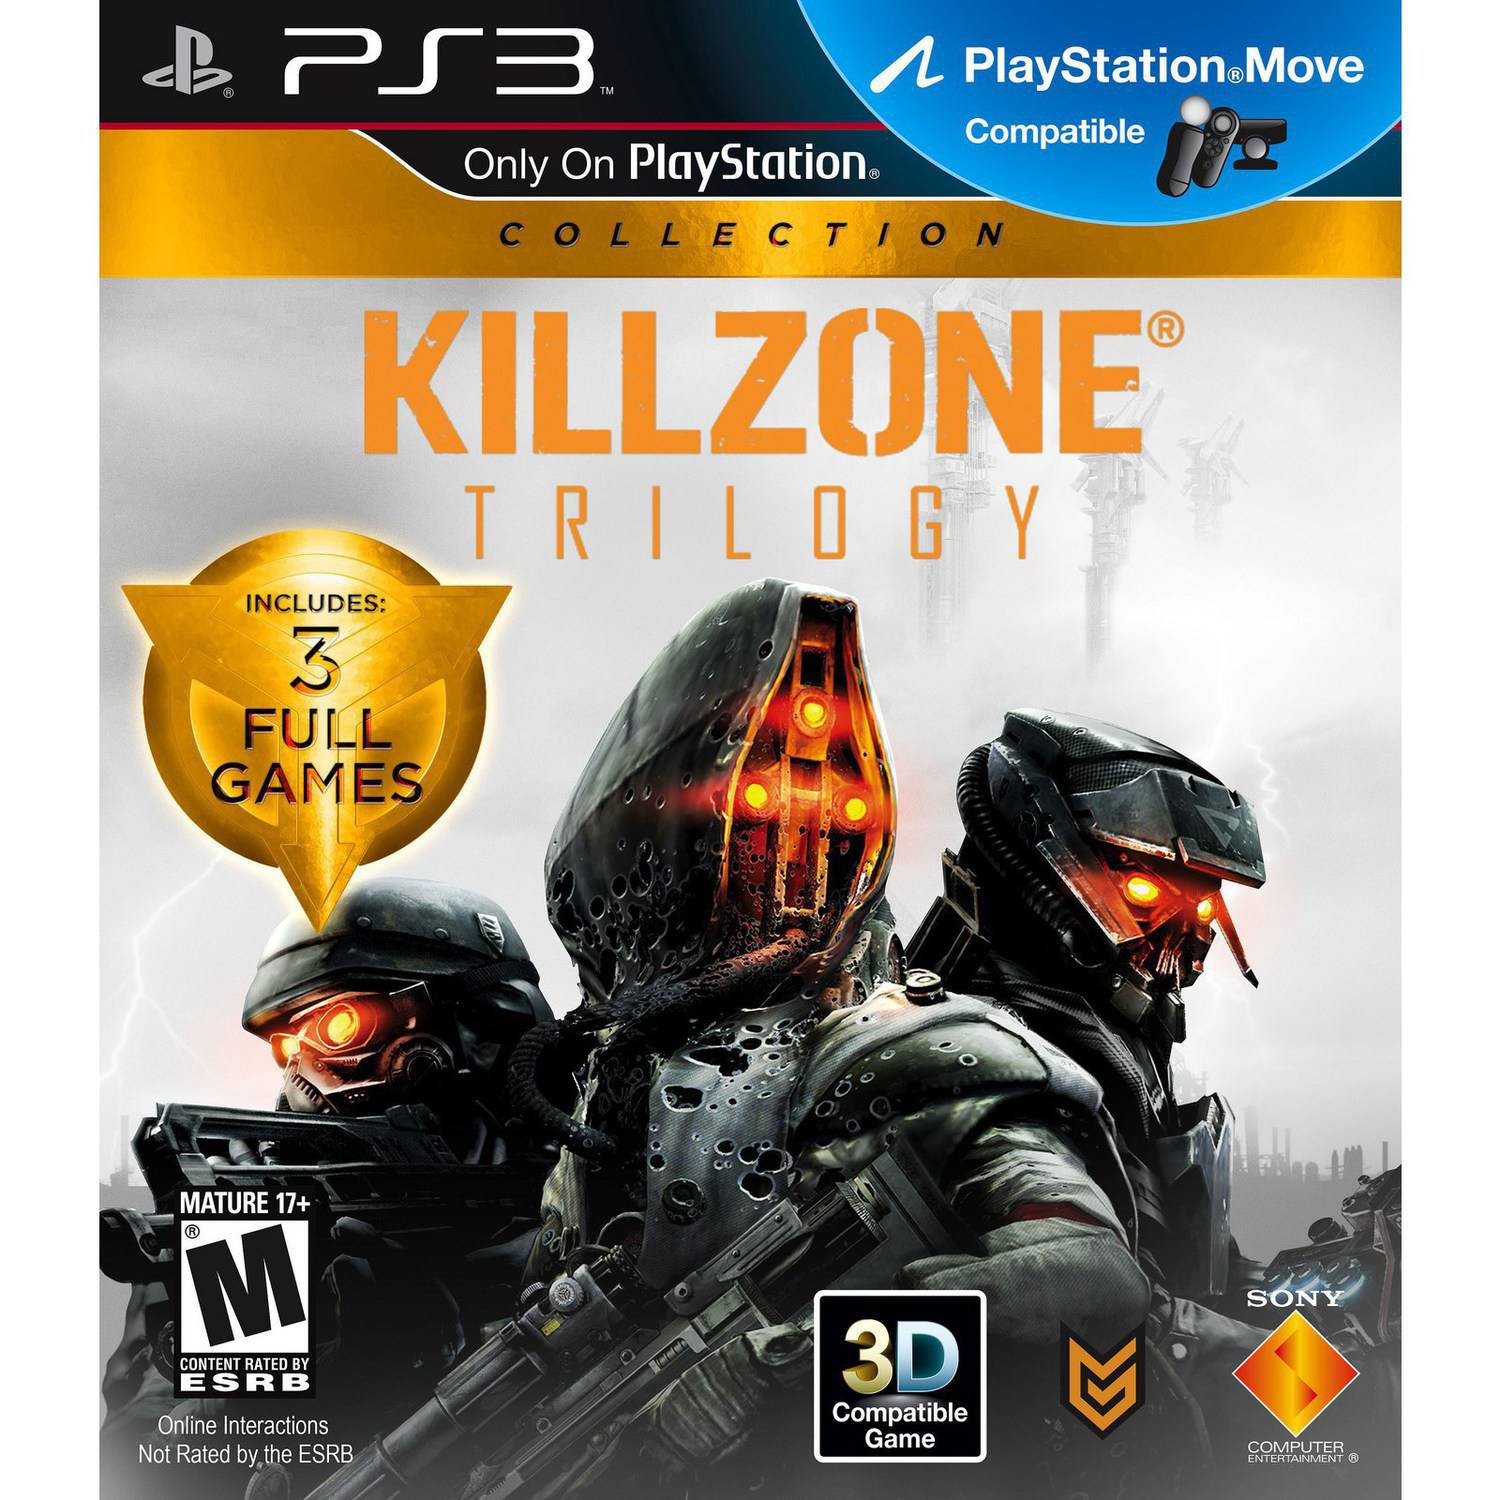 Killzone Trilogy Collection - 2 Disc (PS3)